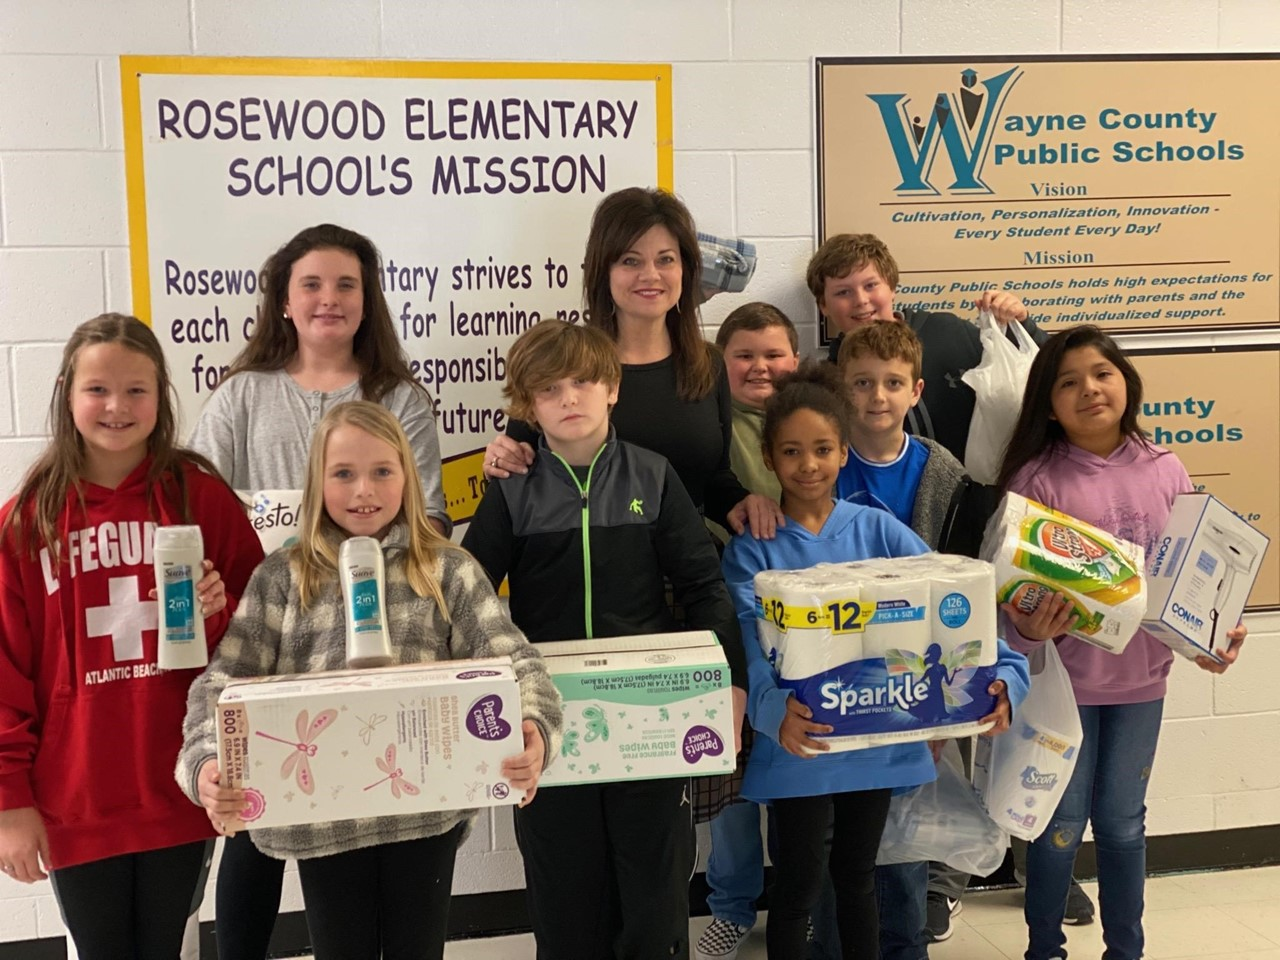 RWE staff and students took up donations for a local agency to support our community!